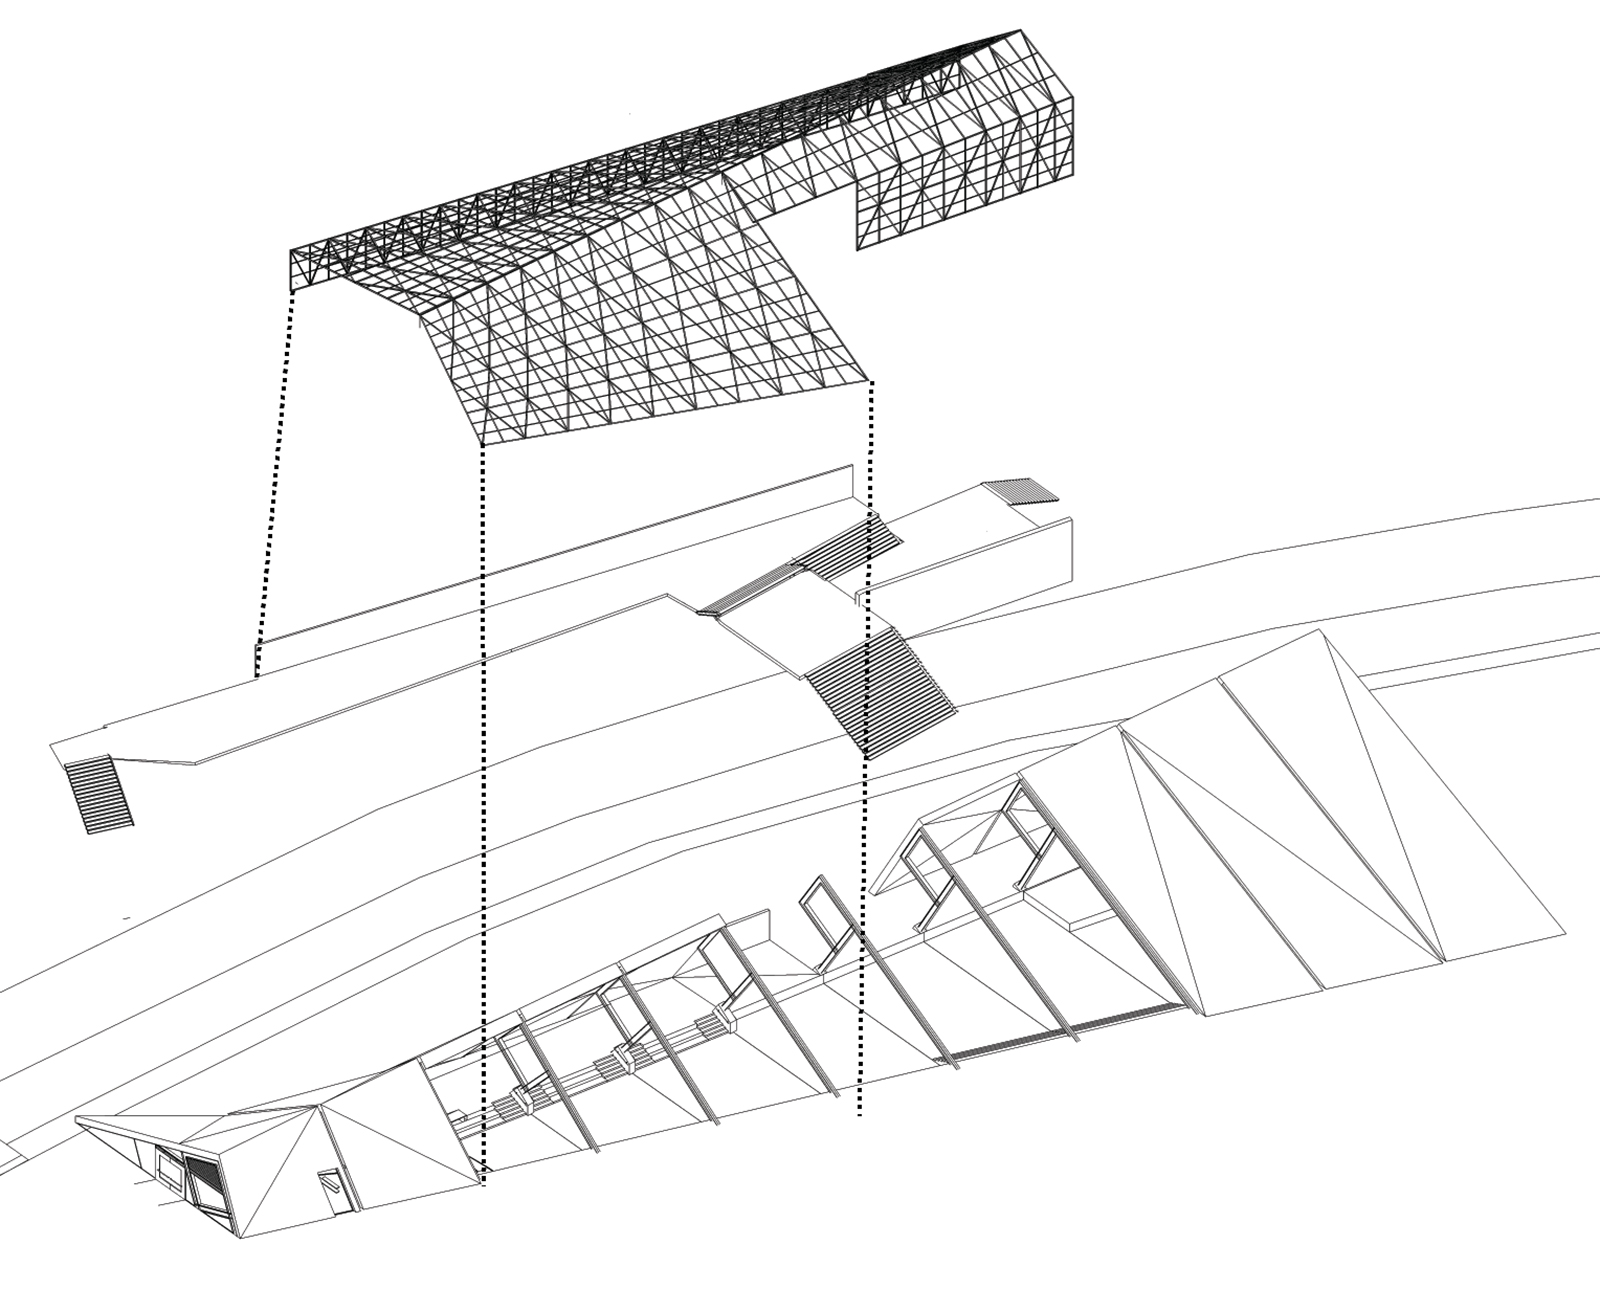 Exploded diagram of the RACA gallery showing the lower gallery spaces, the viewing deck, and the upper cladding system